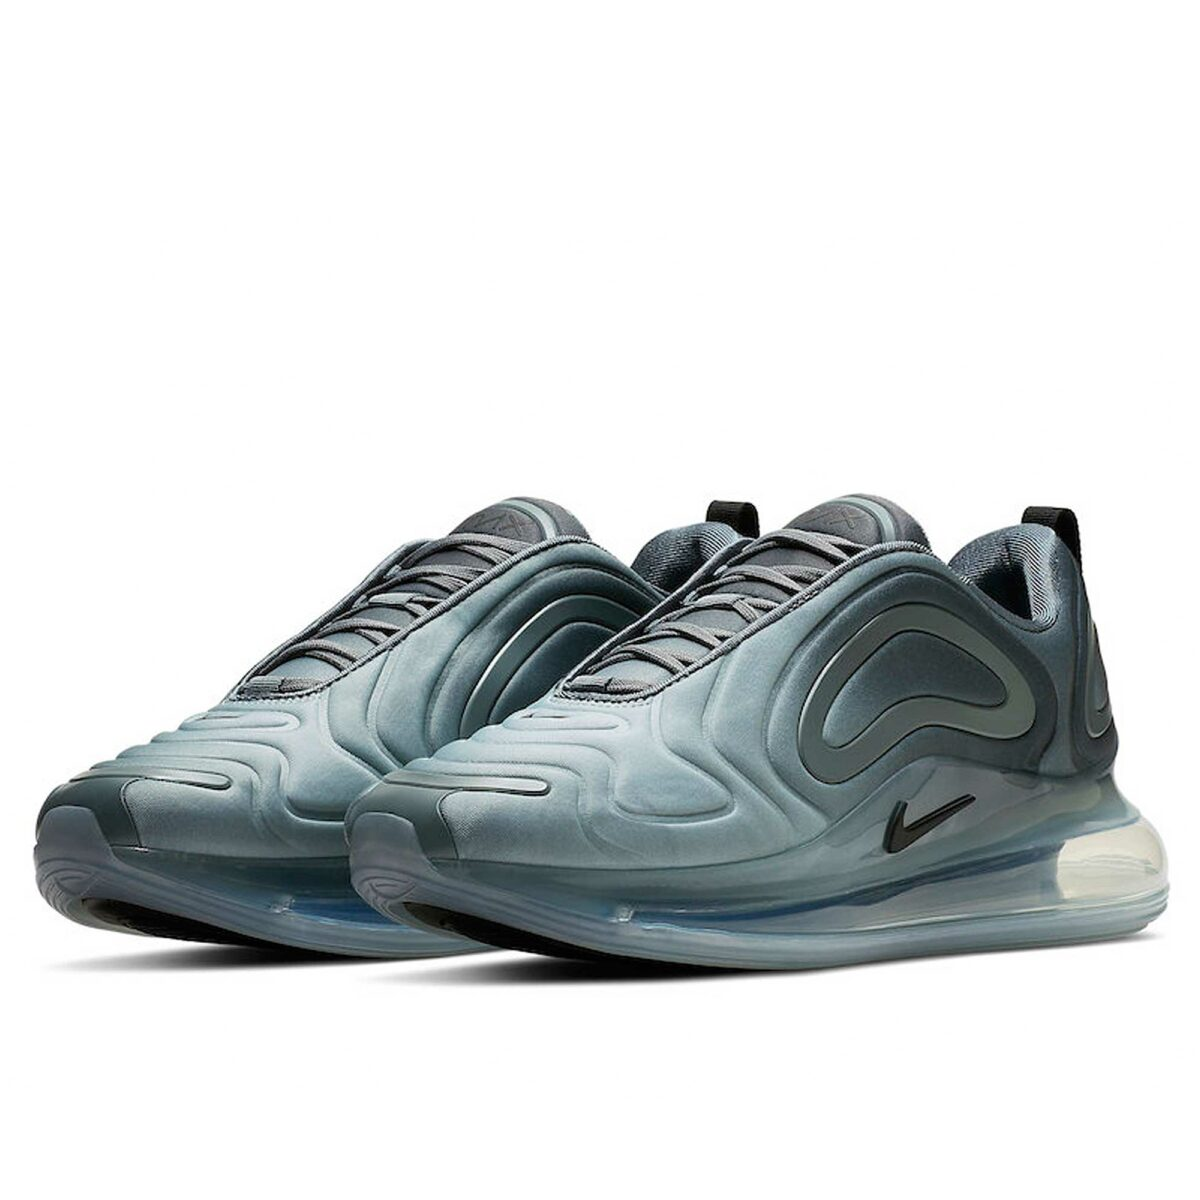 nike air max 720 carbon grey ao2924_002 купить